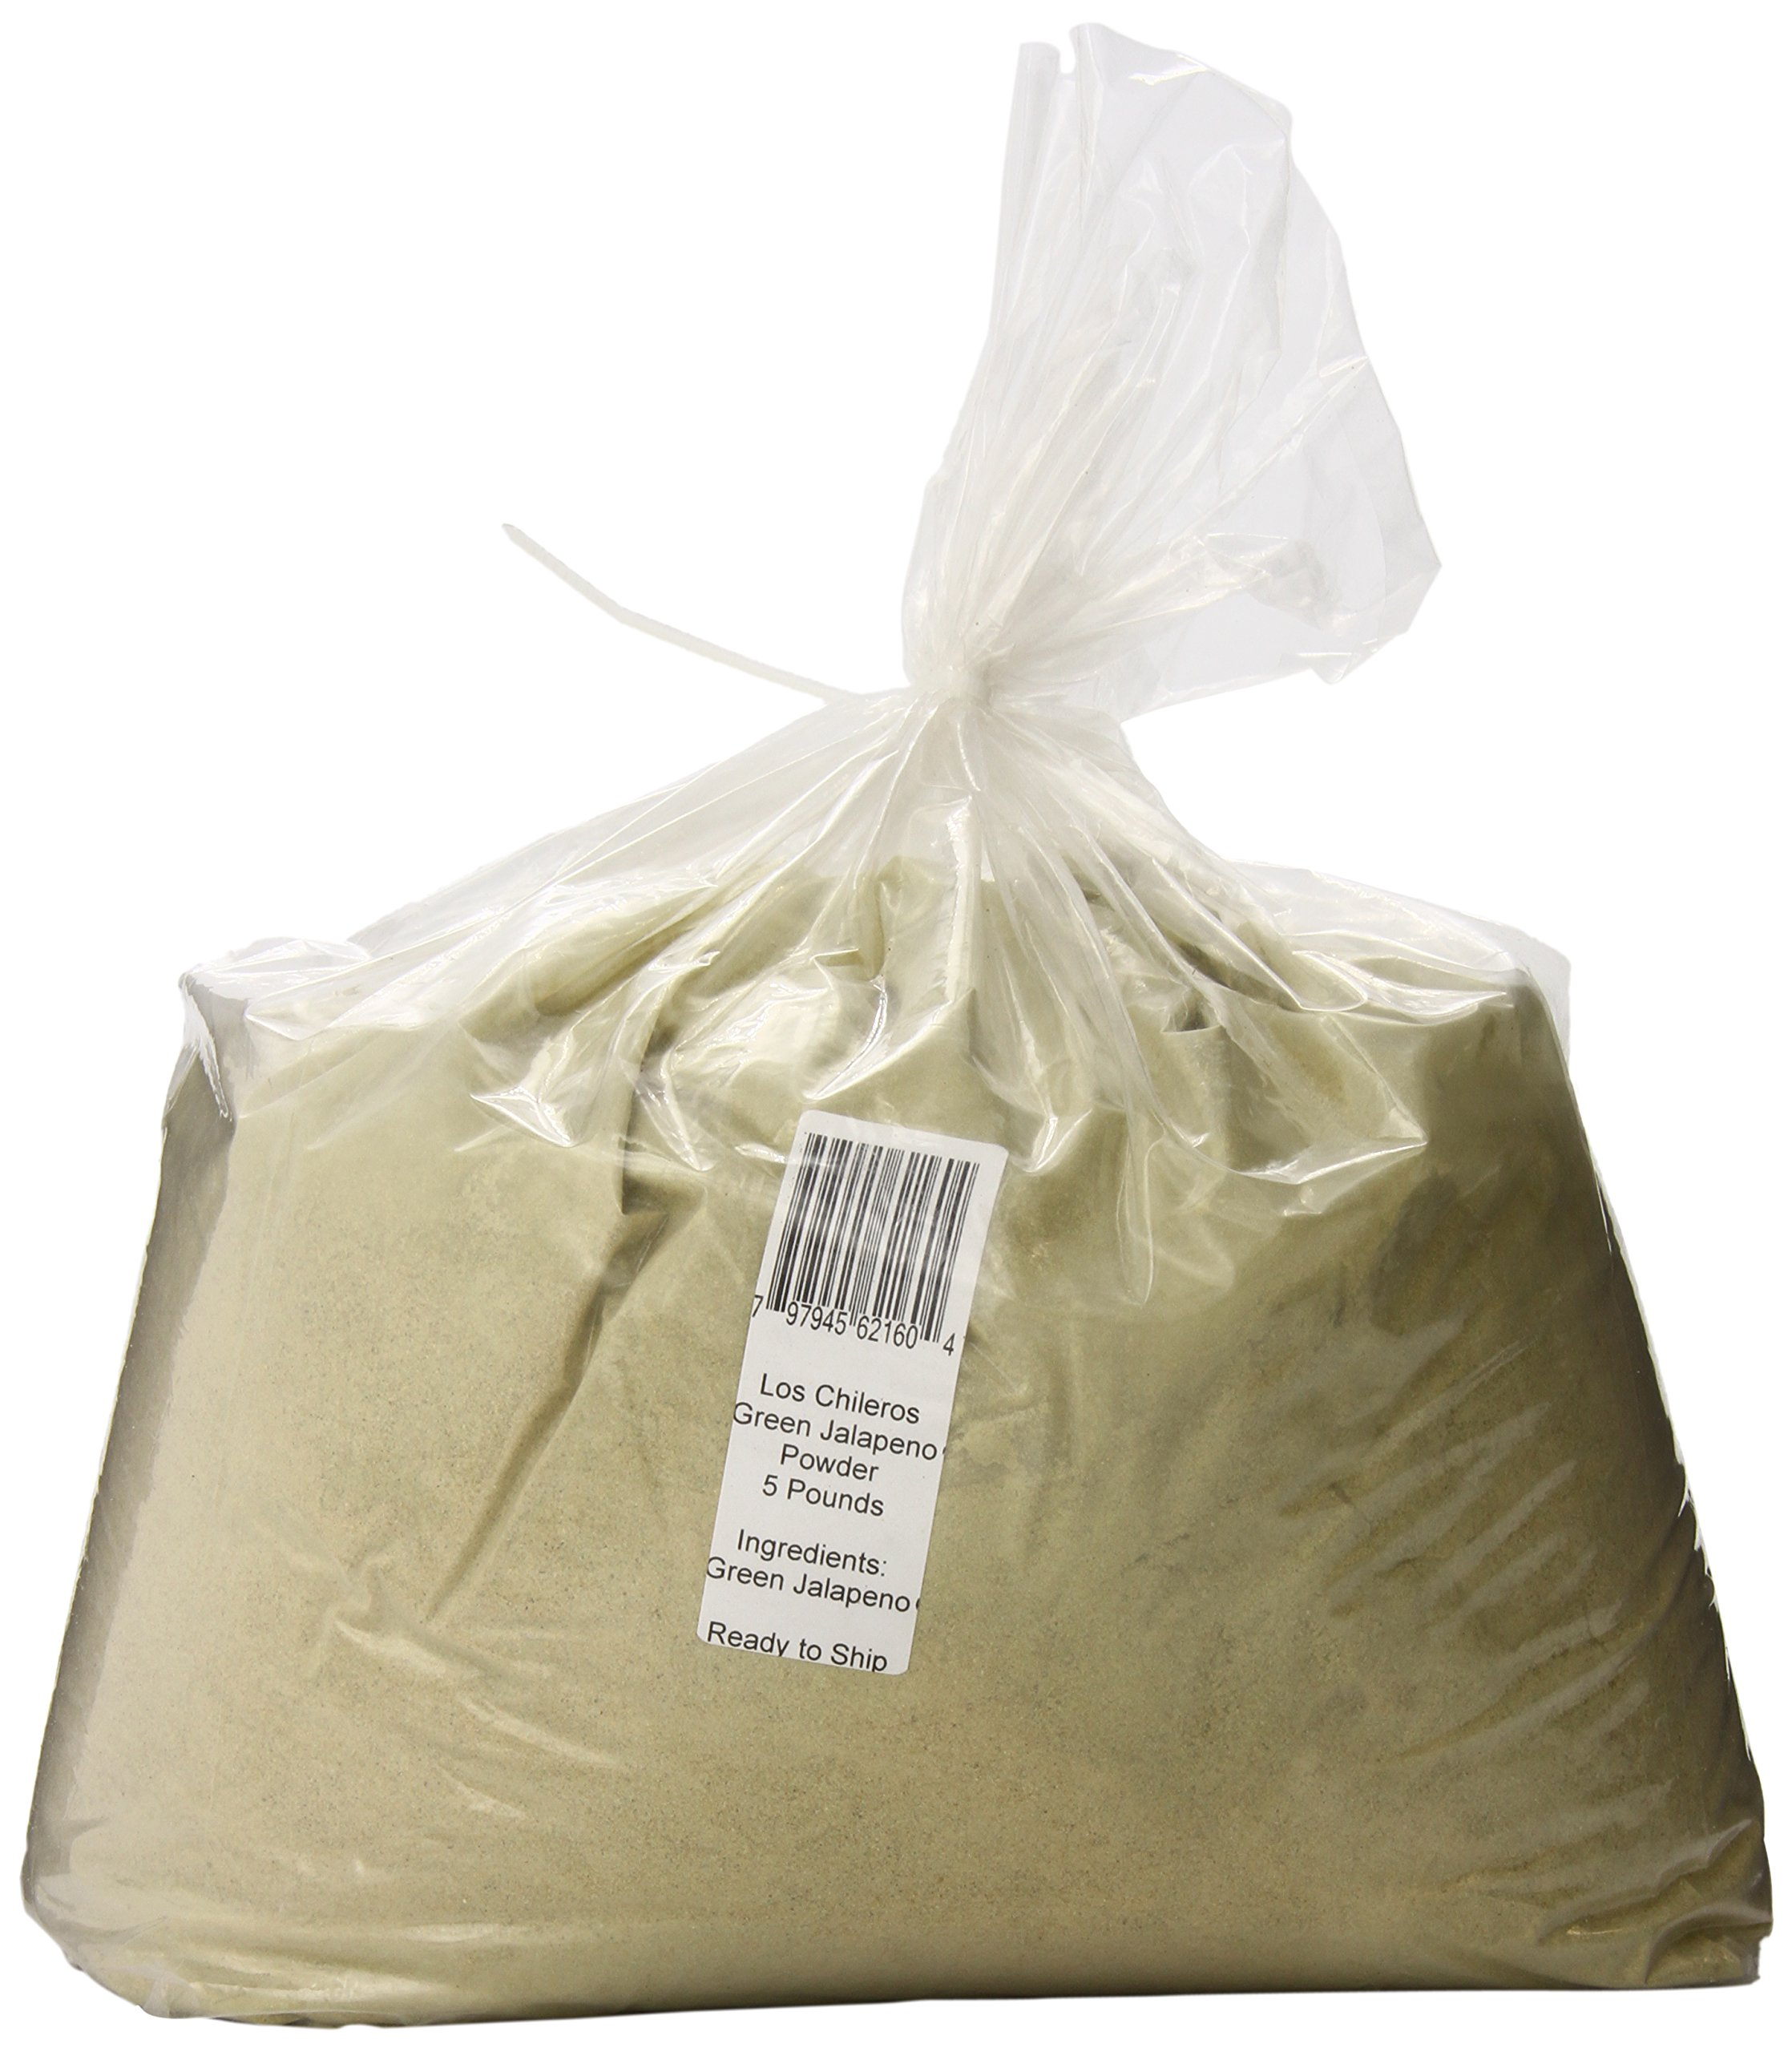 Los Chileros Powder, Green Jalapeno, 5 Pound